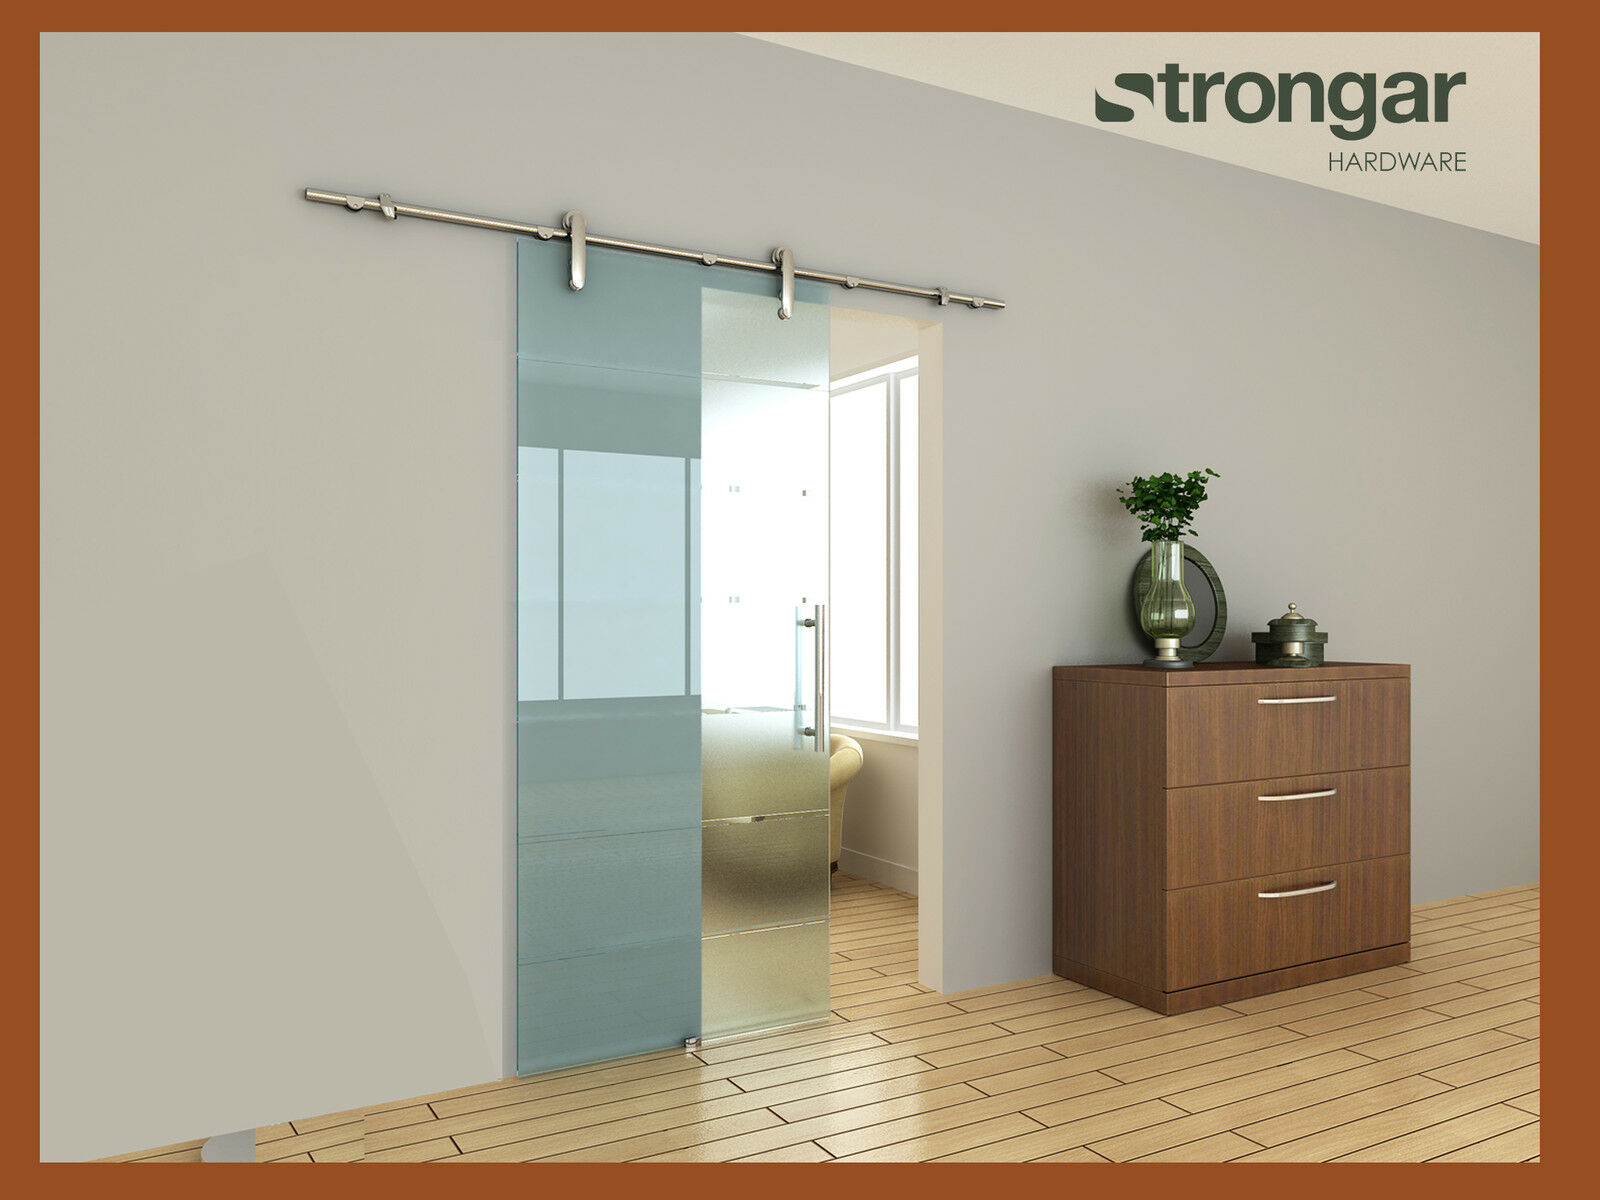 EUROPEAN Stainless Steel Barn Door Hardware For